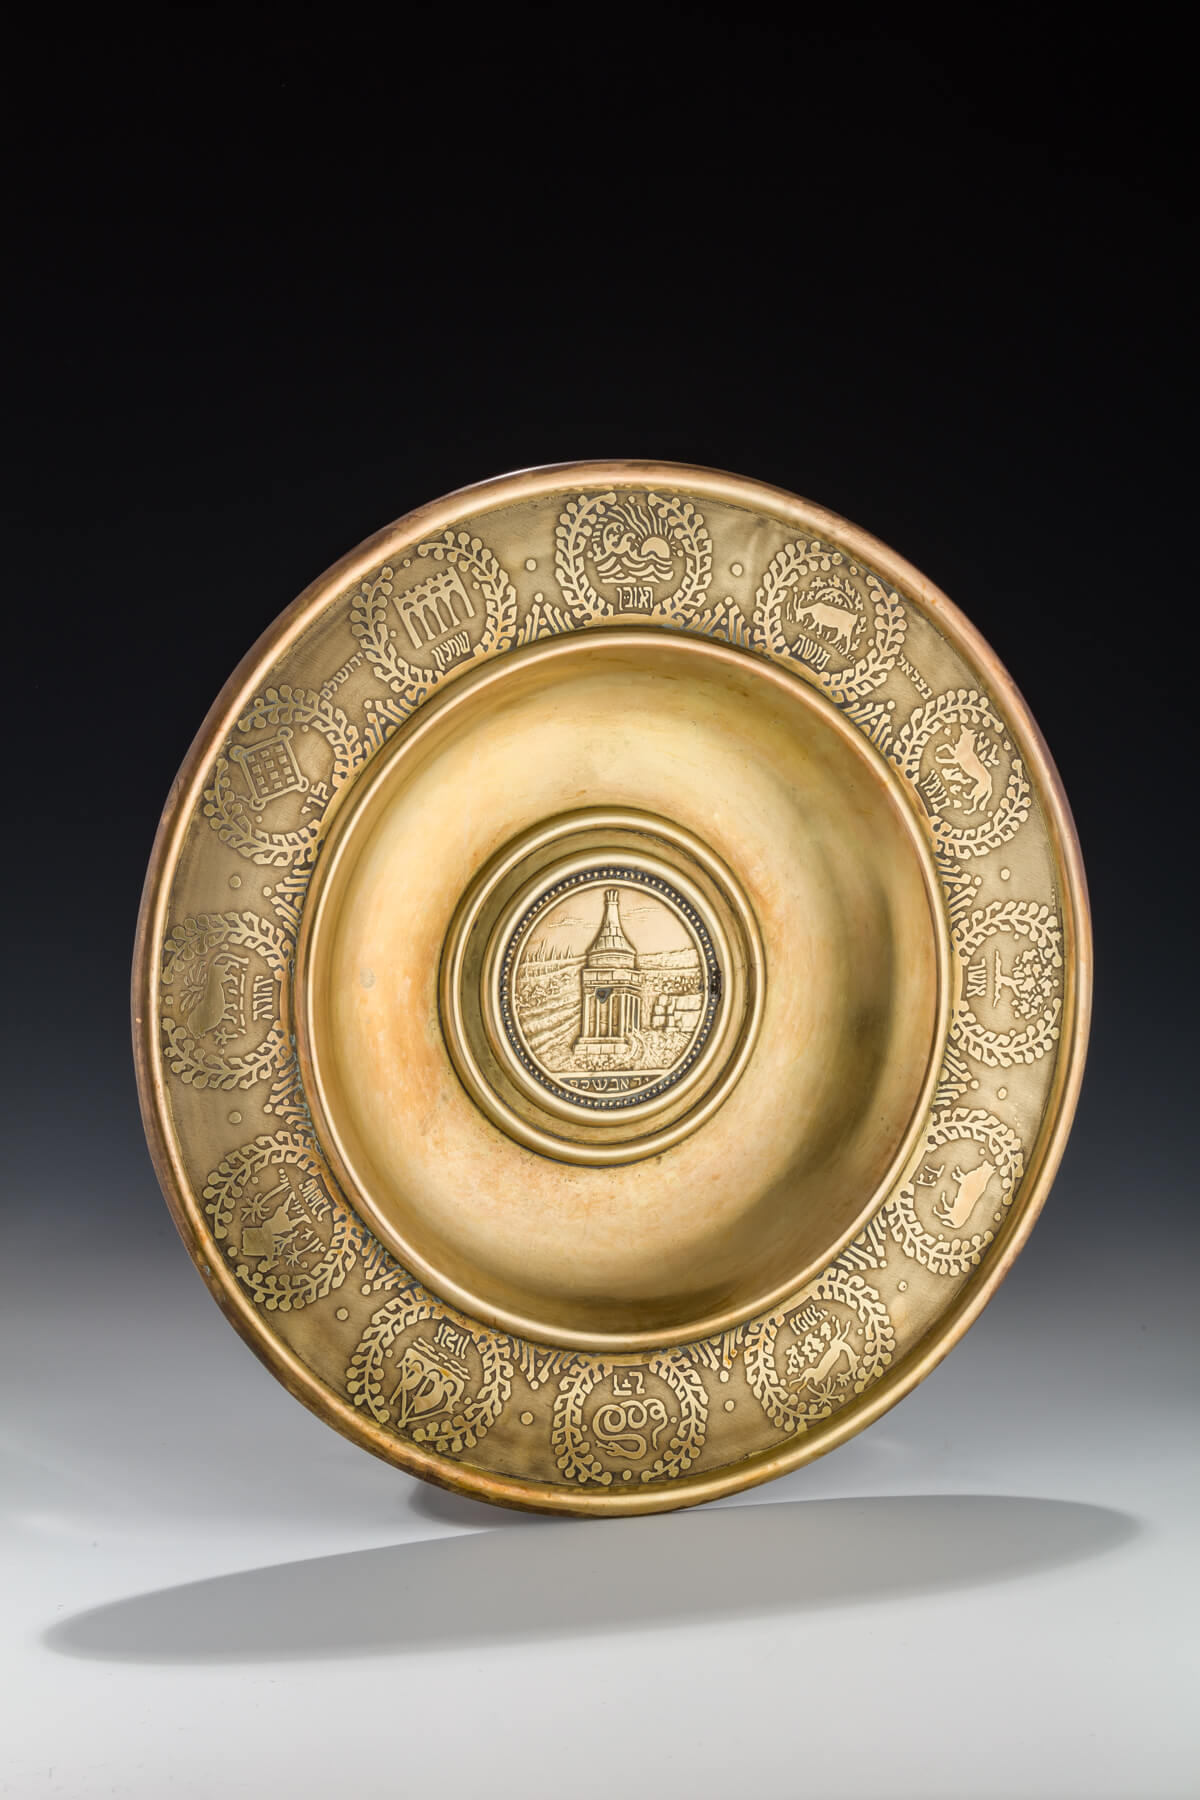 086. A Large Brass Decorative Dish by Bezalel